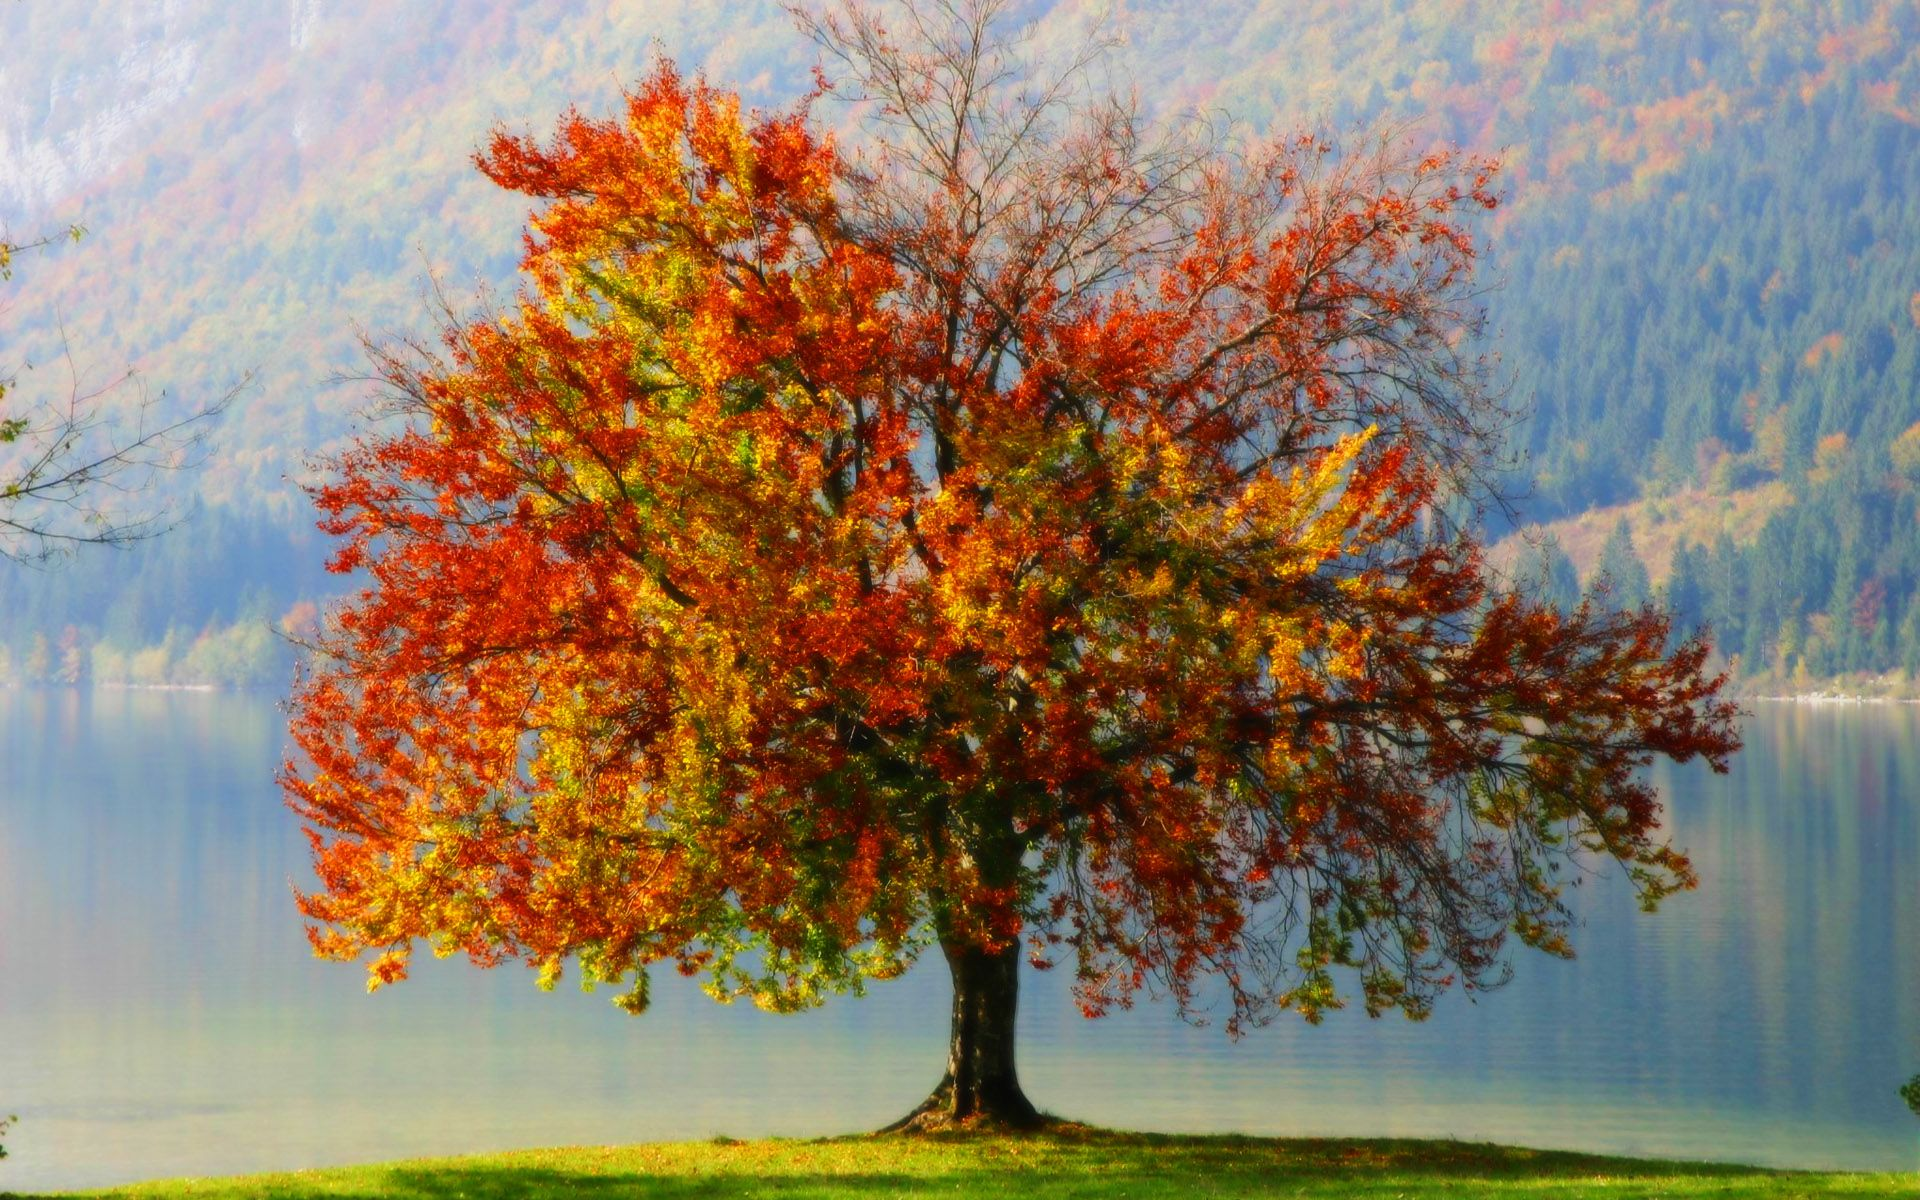 tree with coulour full leaves on autumn wallpaper - http